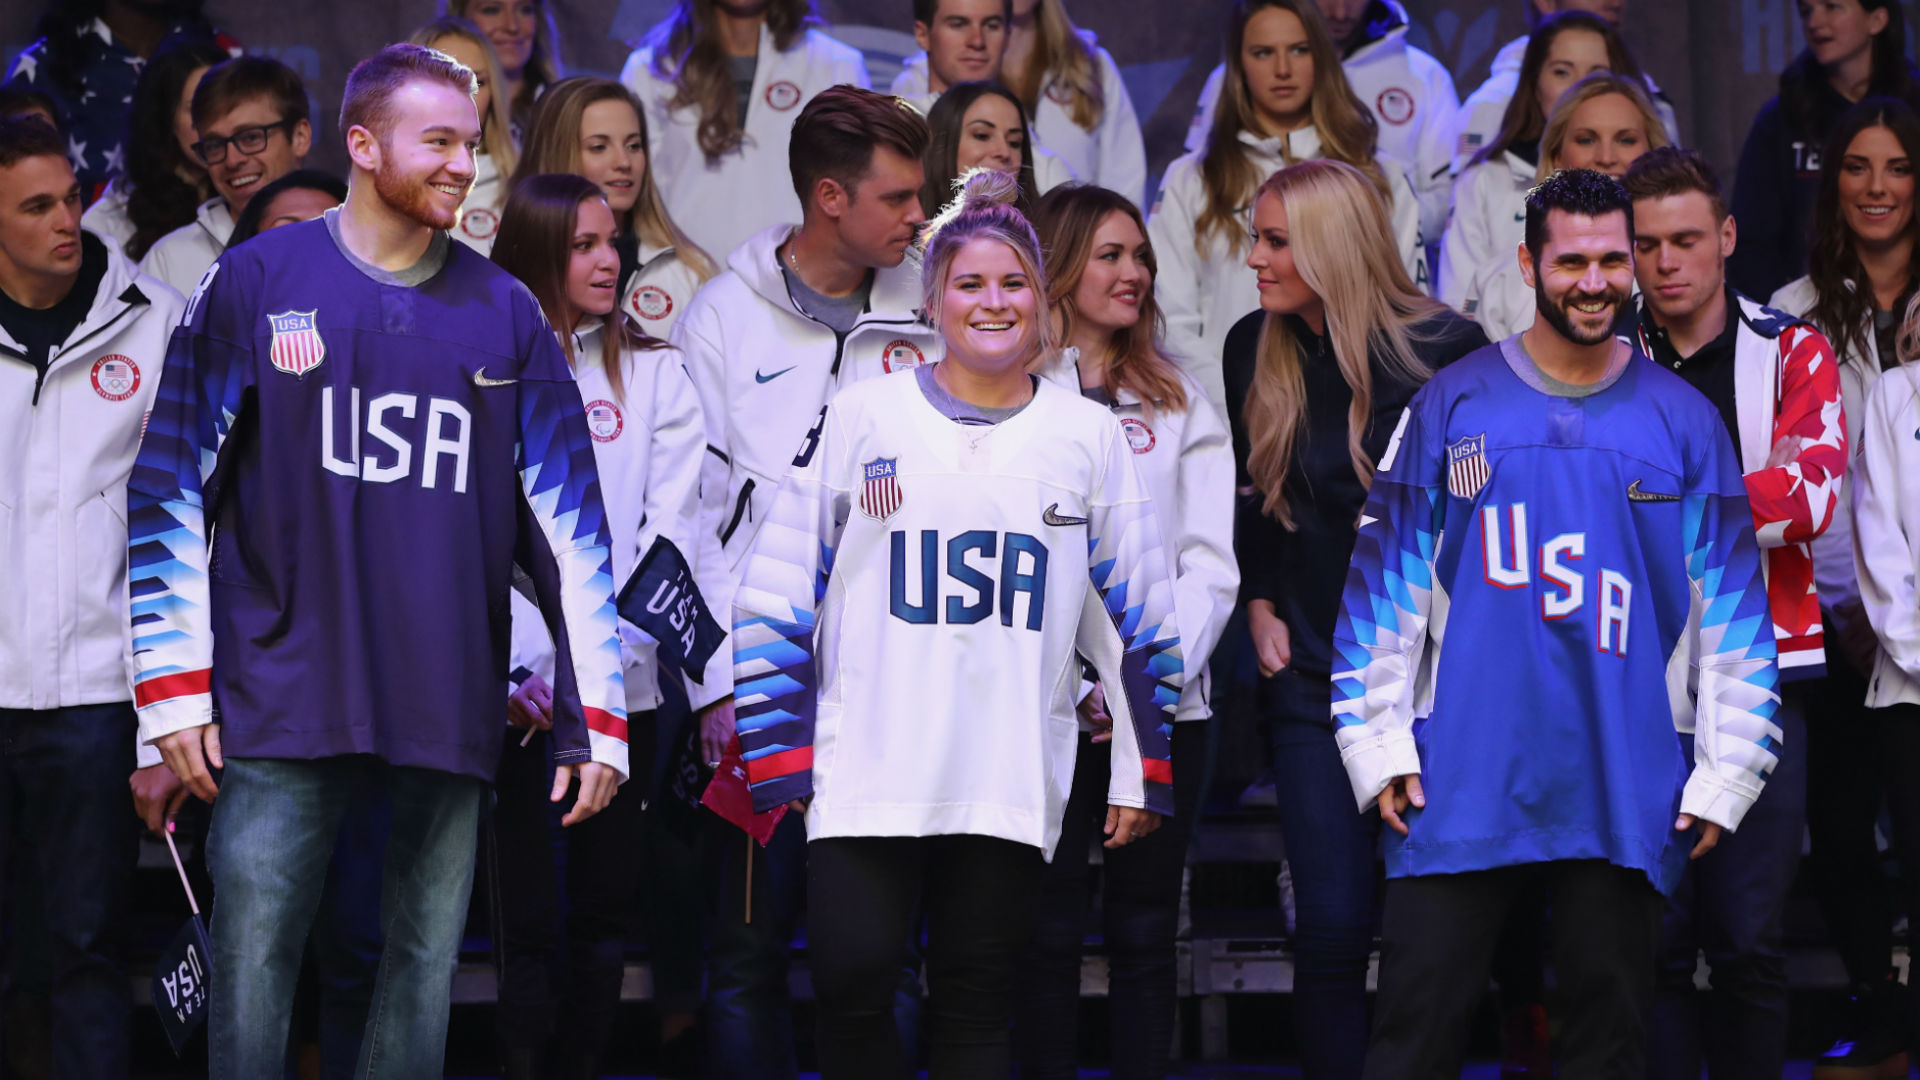 How to watch the 2018 Winter Olympics: Full USA men's, women's Olympic hockey schedules